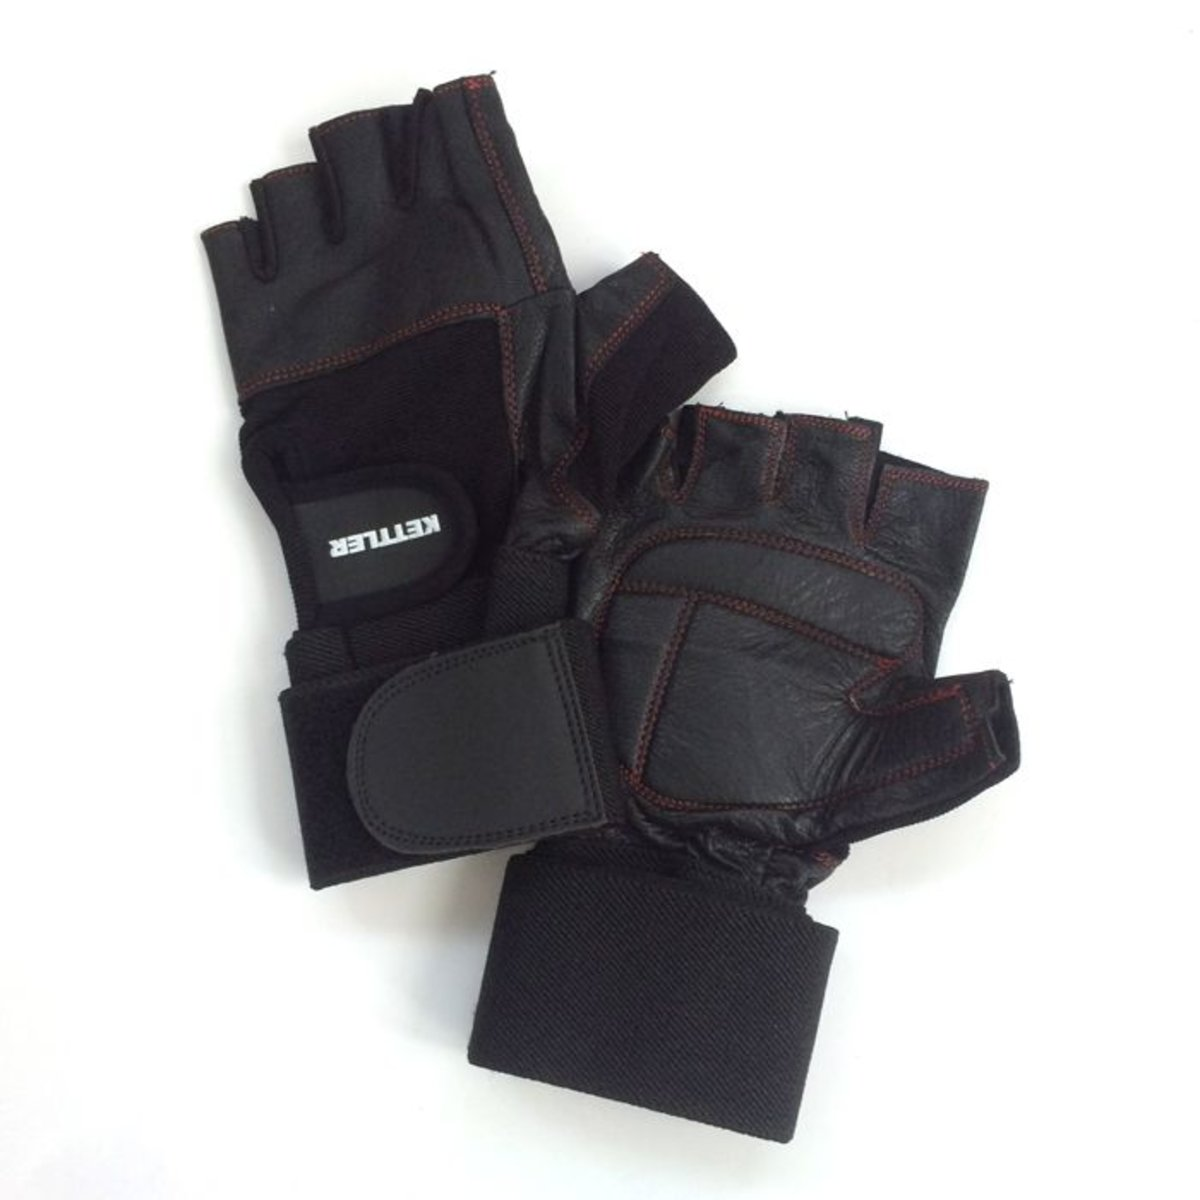 Premium Weight Lifting Gloves with Wrist Strap- Size M